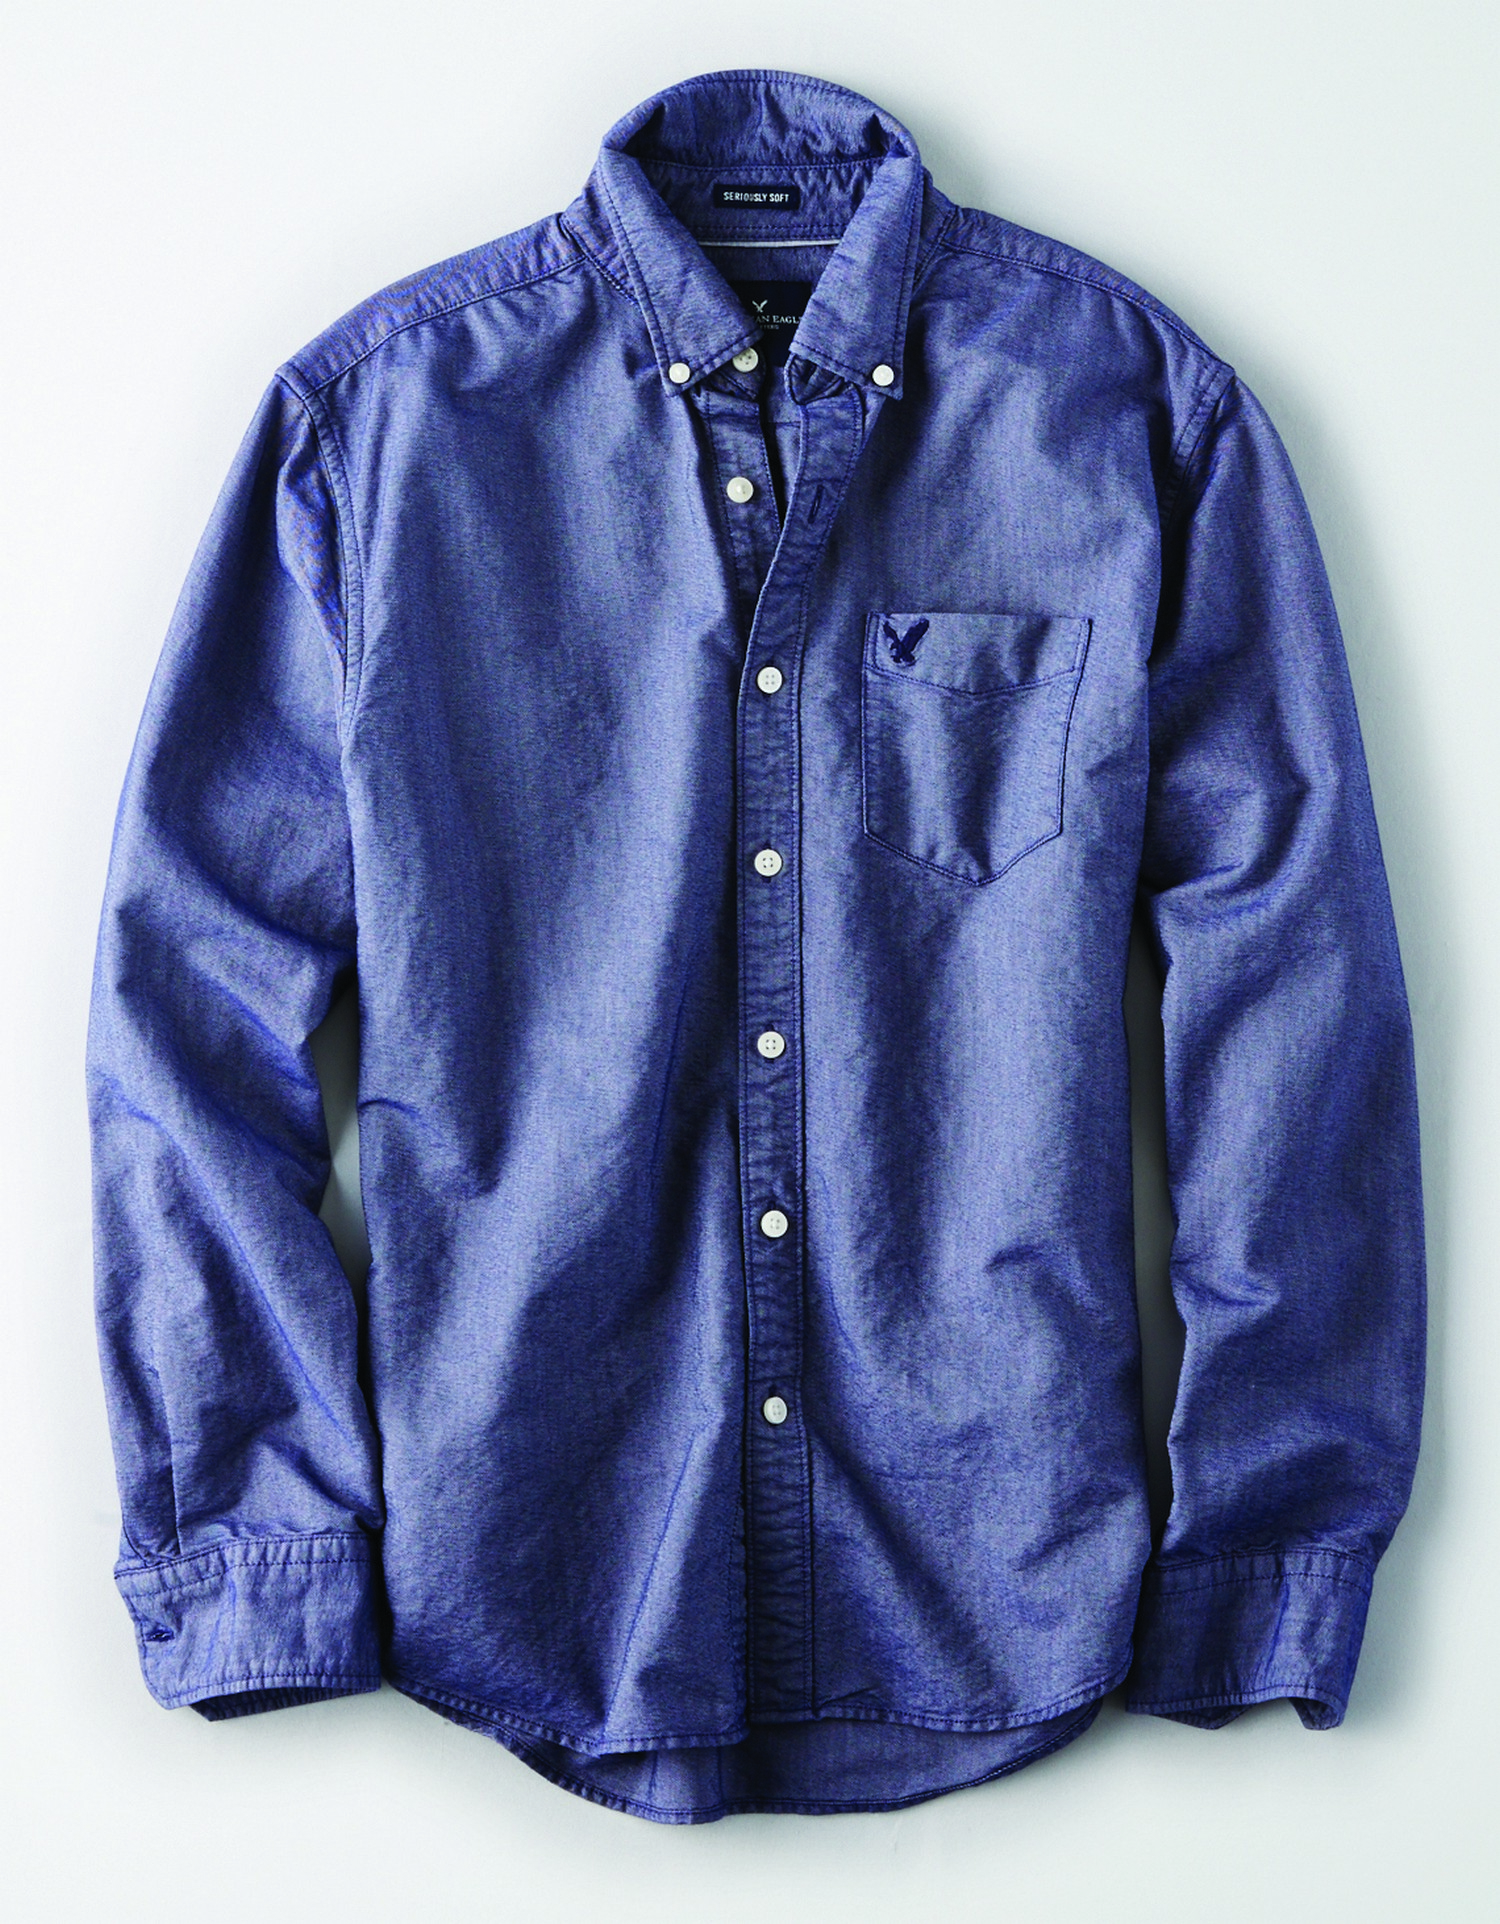 AE - INTL - Apparel - M - CF BD Oxford w/Eagle - Dark Blue - solid color - Navy Blue embroidered eagle on left chest pocket KS *Tracked